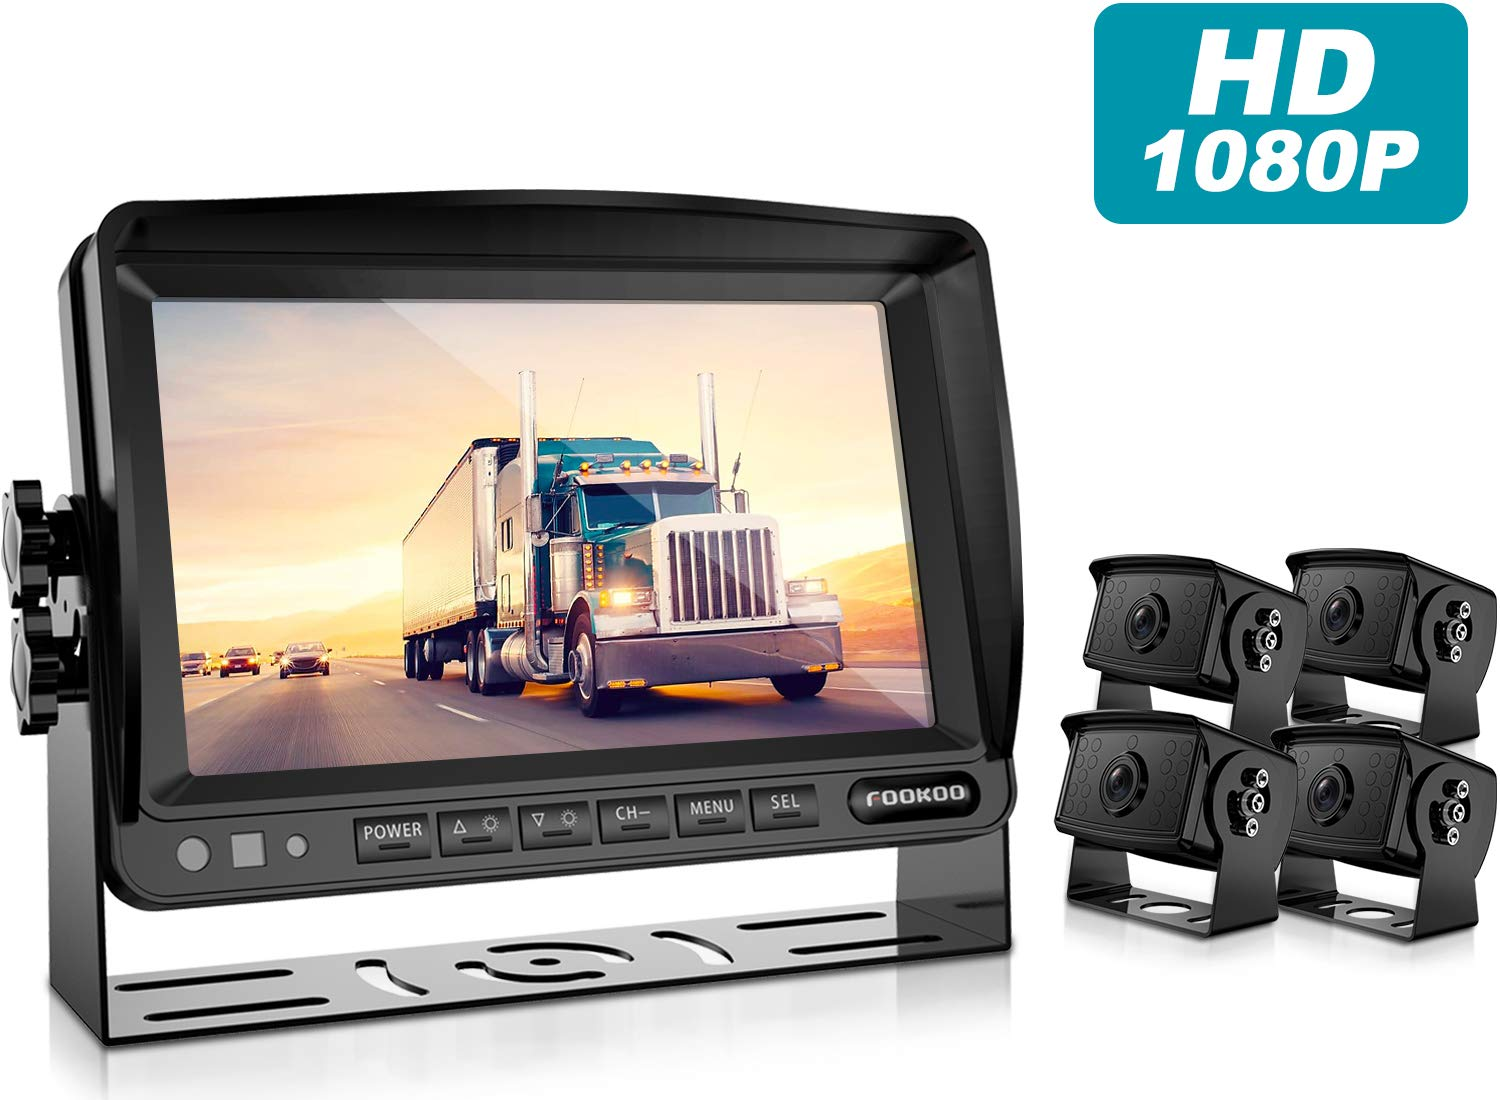 Fookoo Ⅱ HD Backup Camera System Kit,7 HD Backup Camera System Kit,1080P 7'' Split Screen Monitor+IP69 Waterproof Rear View Camera for Bus/Truck/Trailer/Box/RV/Trailer/Tractor/ 5th Wheel (FHD4-Wired)